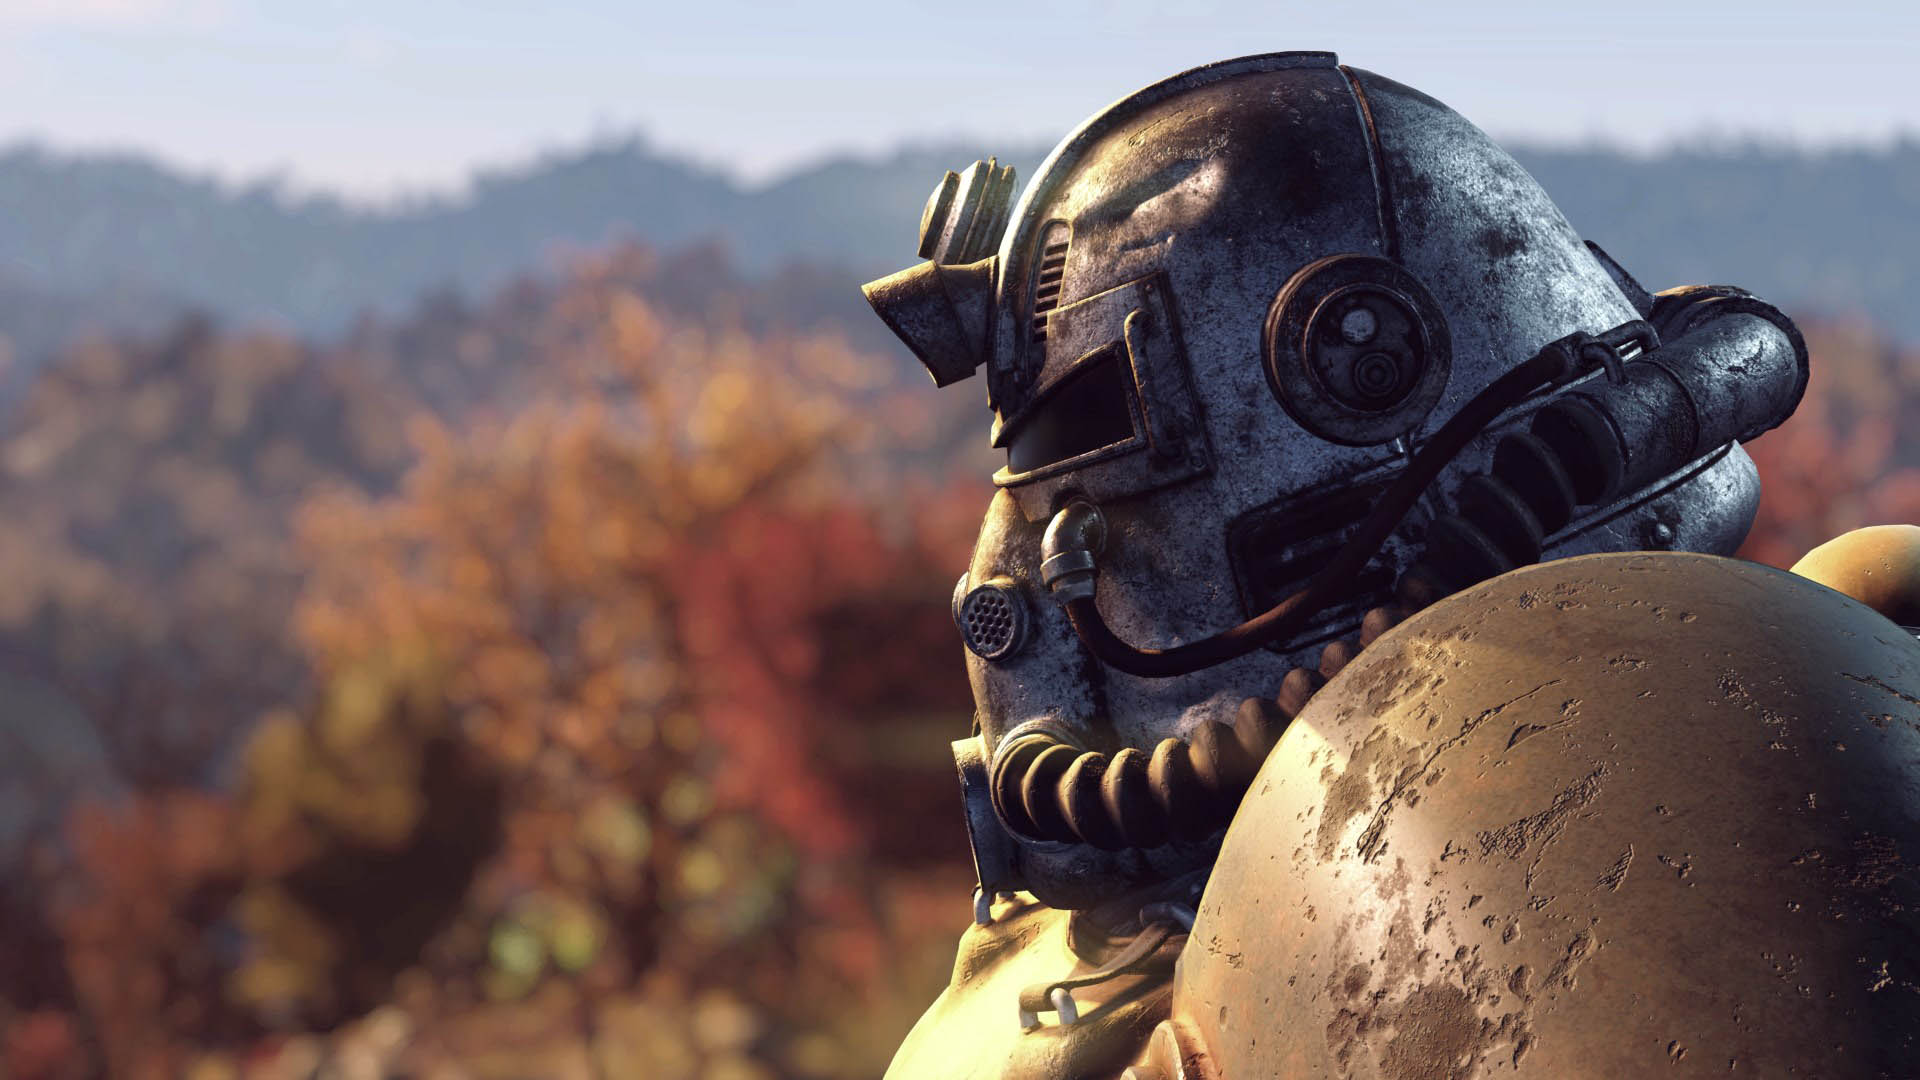 bethesda fallout 76 nuclear winter